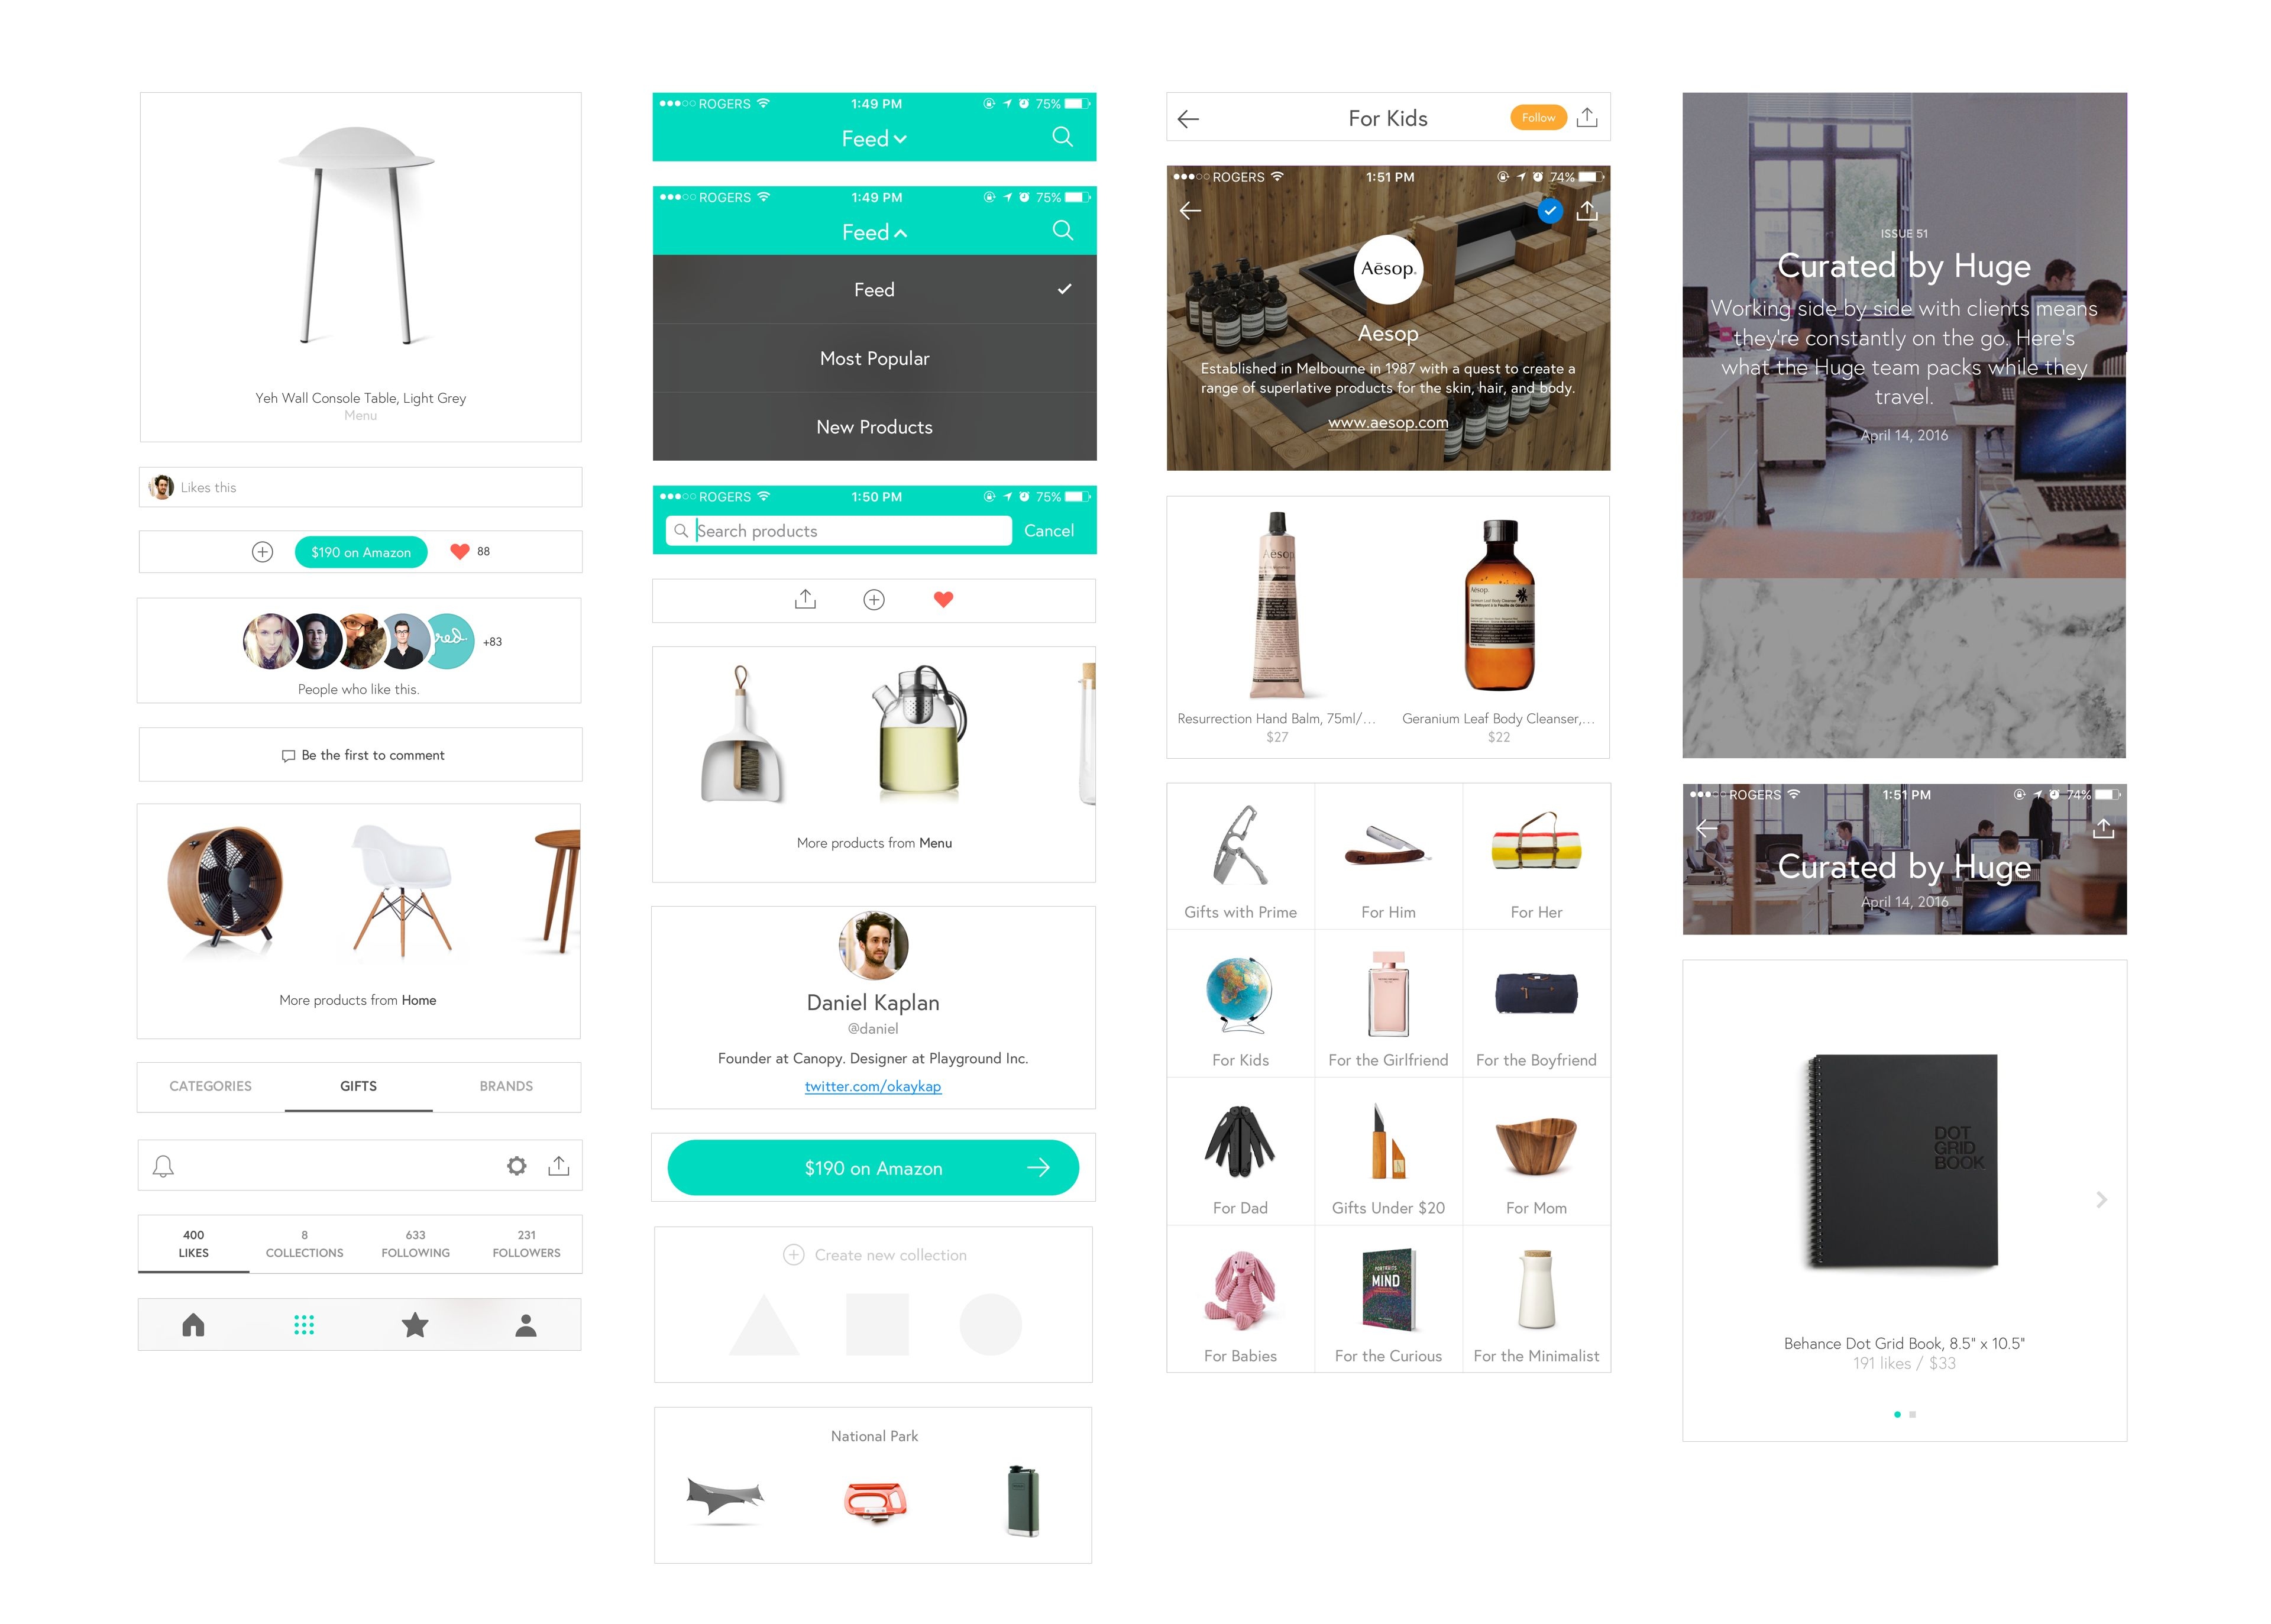 A collection of screenshots from the retail shopping app Canopy. The UI for the product, brand and partner page + various design elements from the app experience.